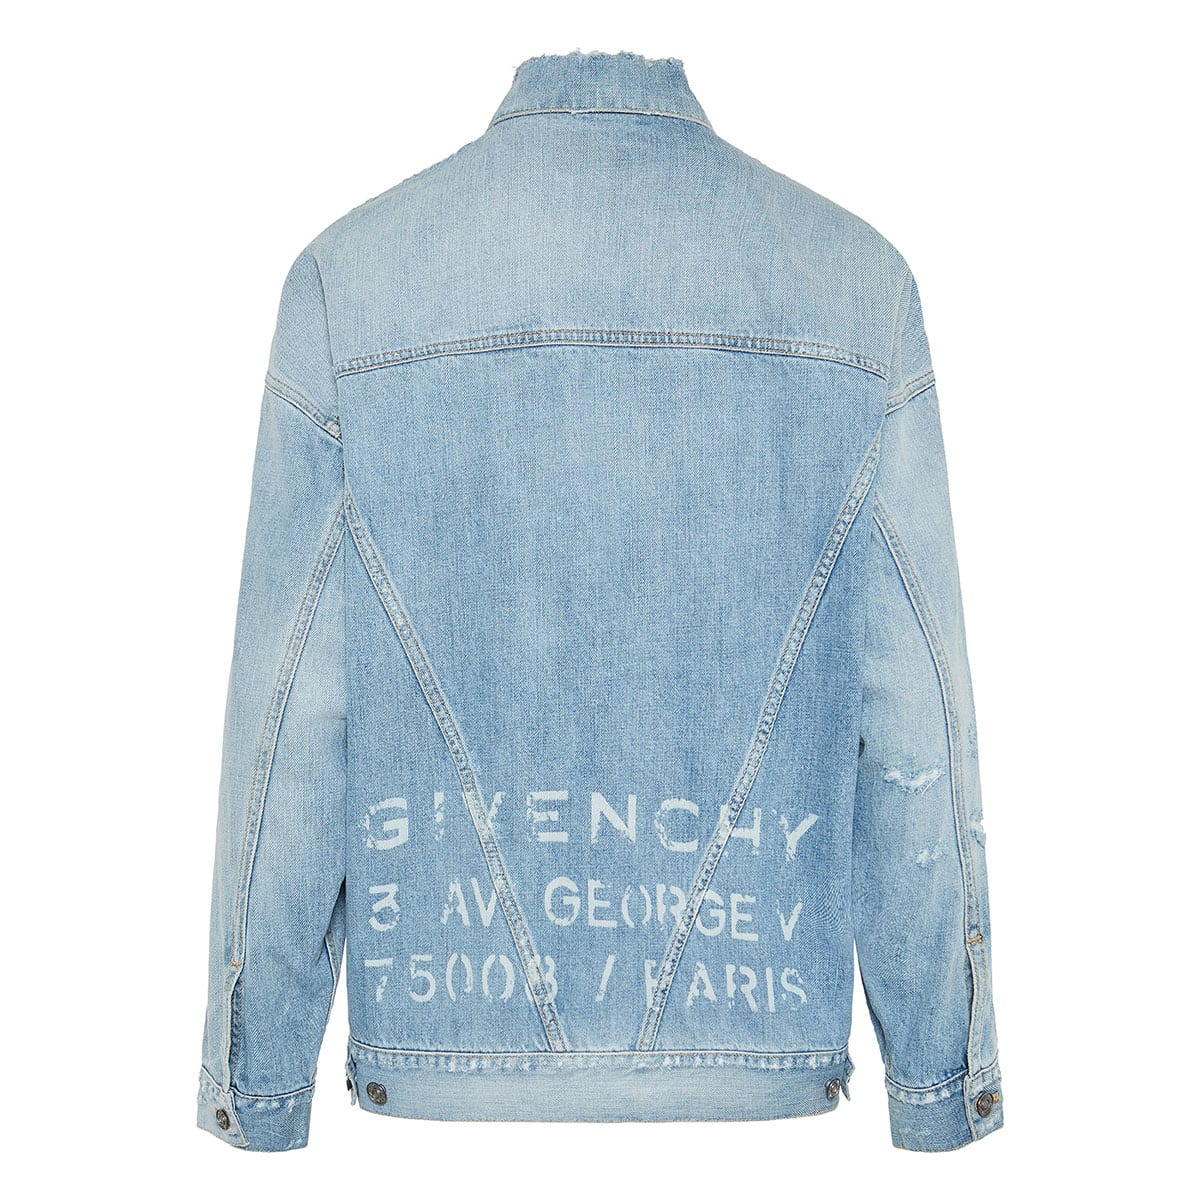 Oversized distressed denim logo jacket